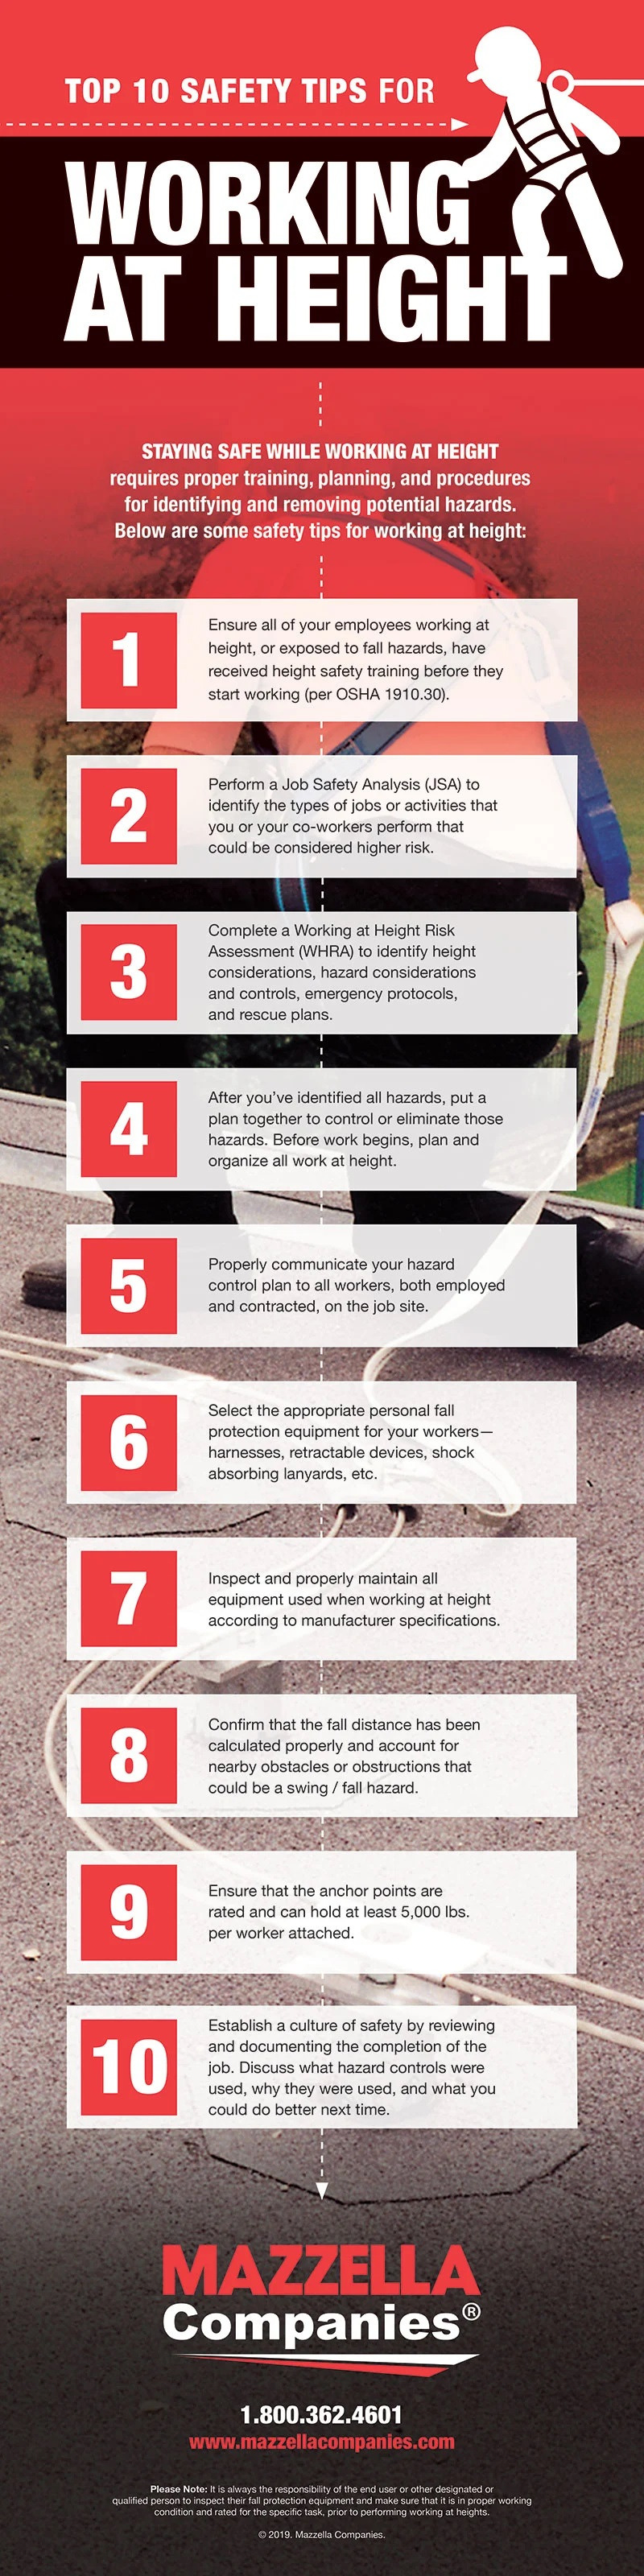 Top 10 Safety Tips for Working at Height #infographic